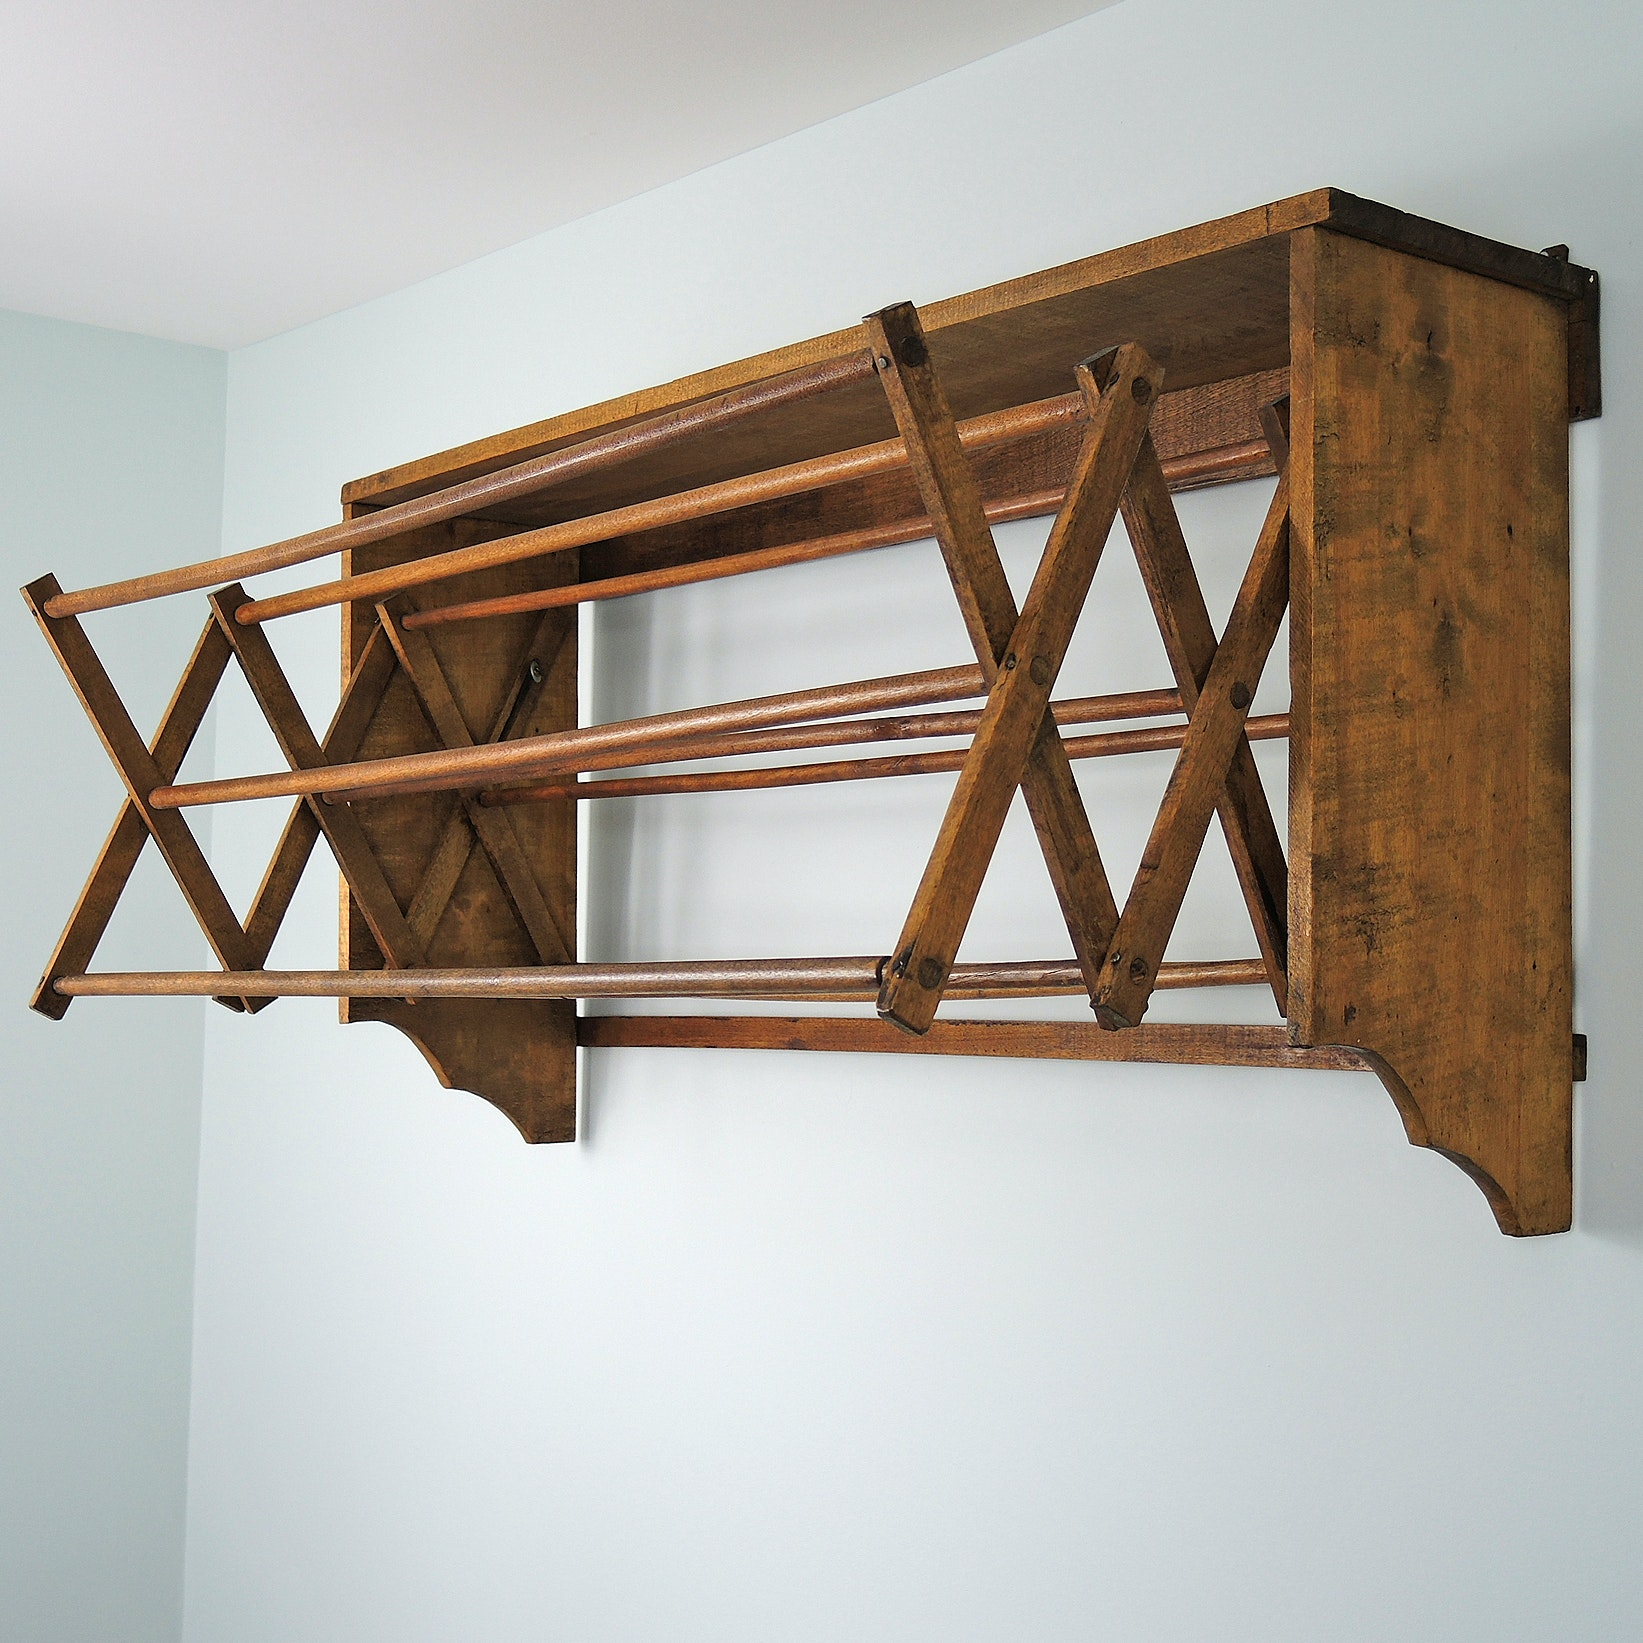 Rustic Wall-Mounted Drying Rack, Mid 20th Century